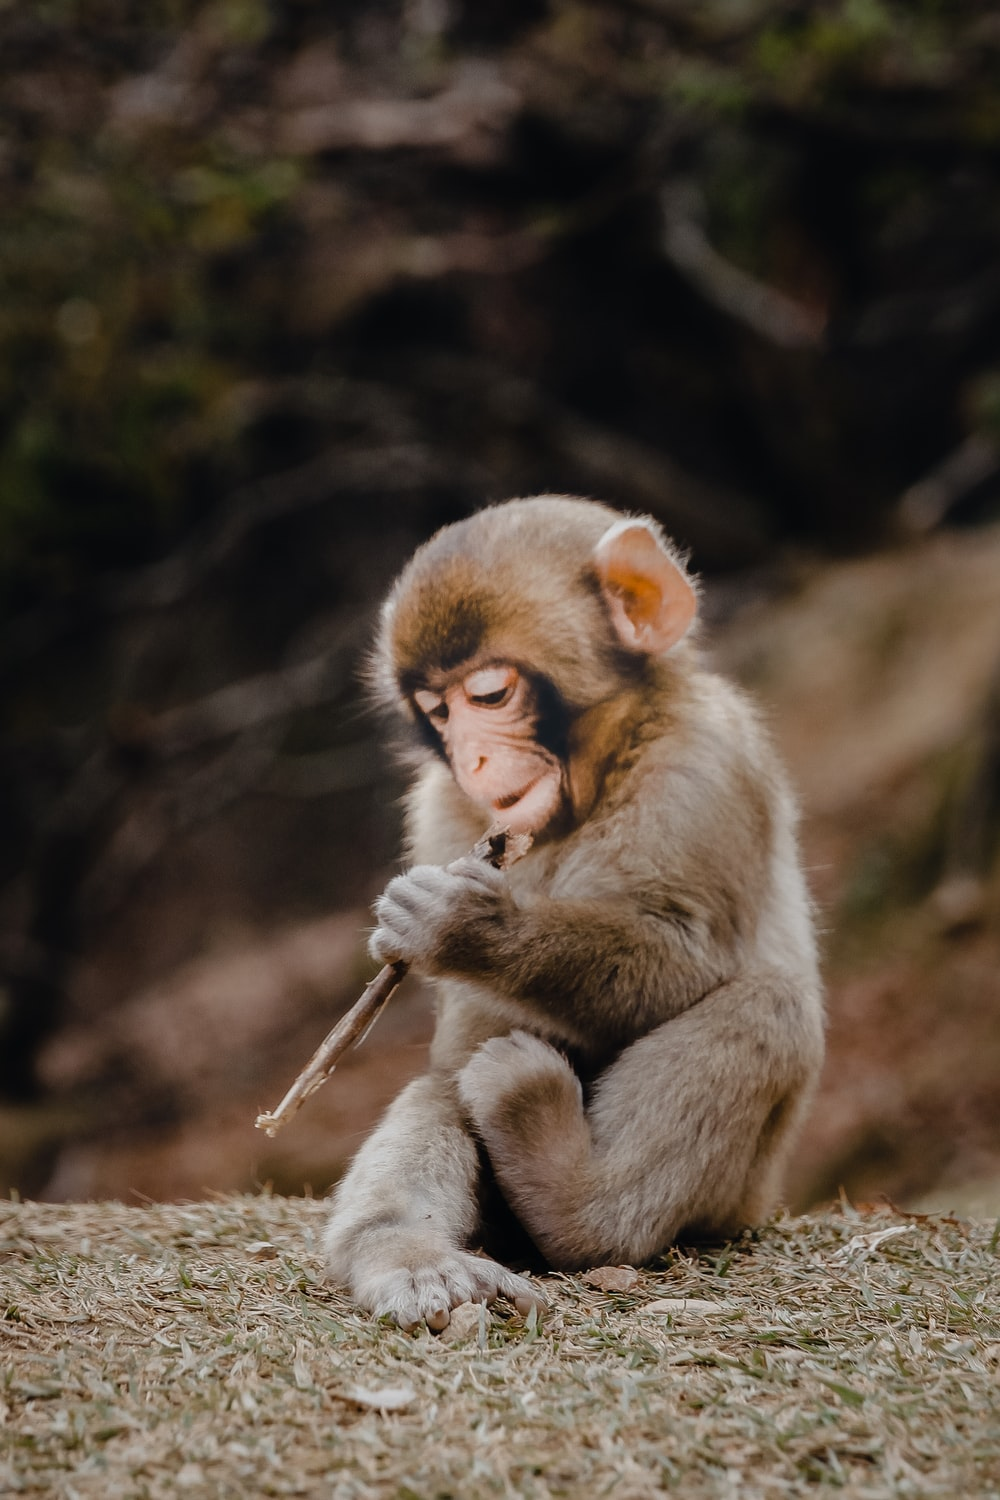 gray monkey playing instrument at daytime